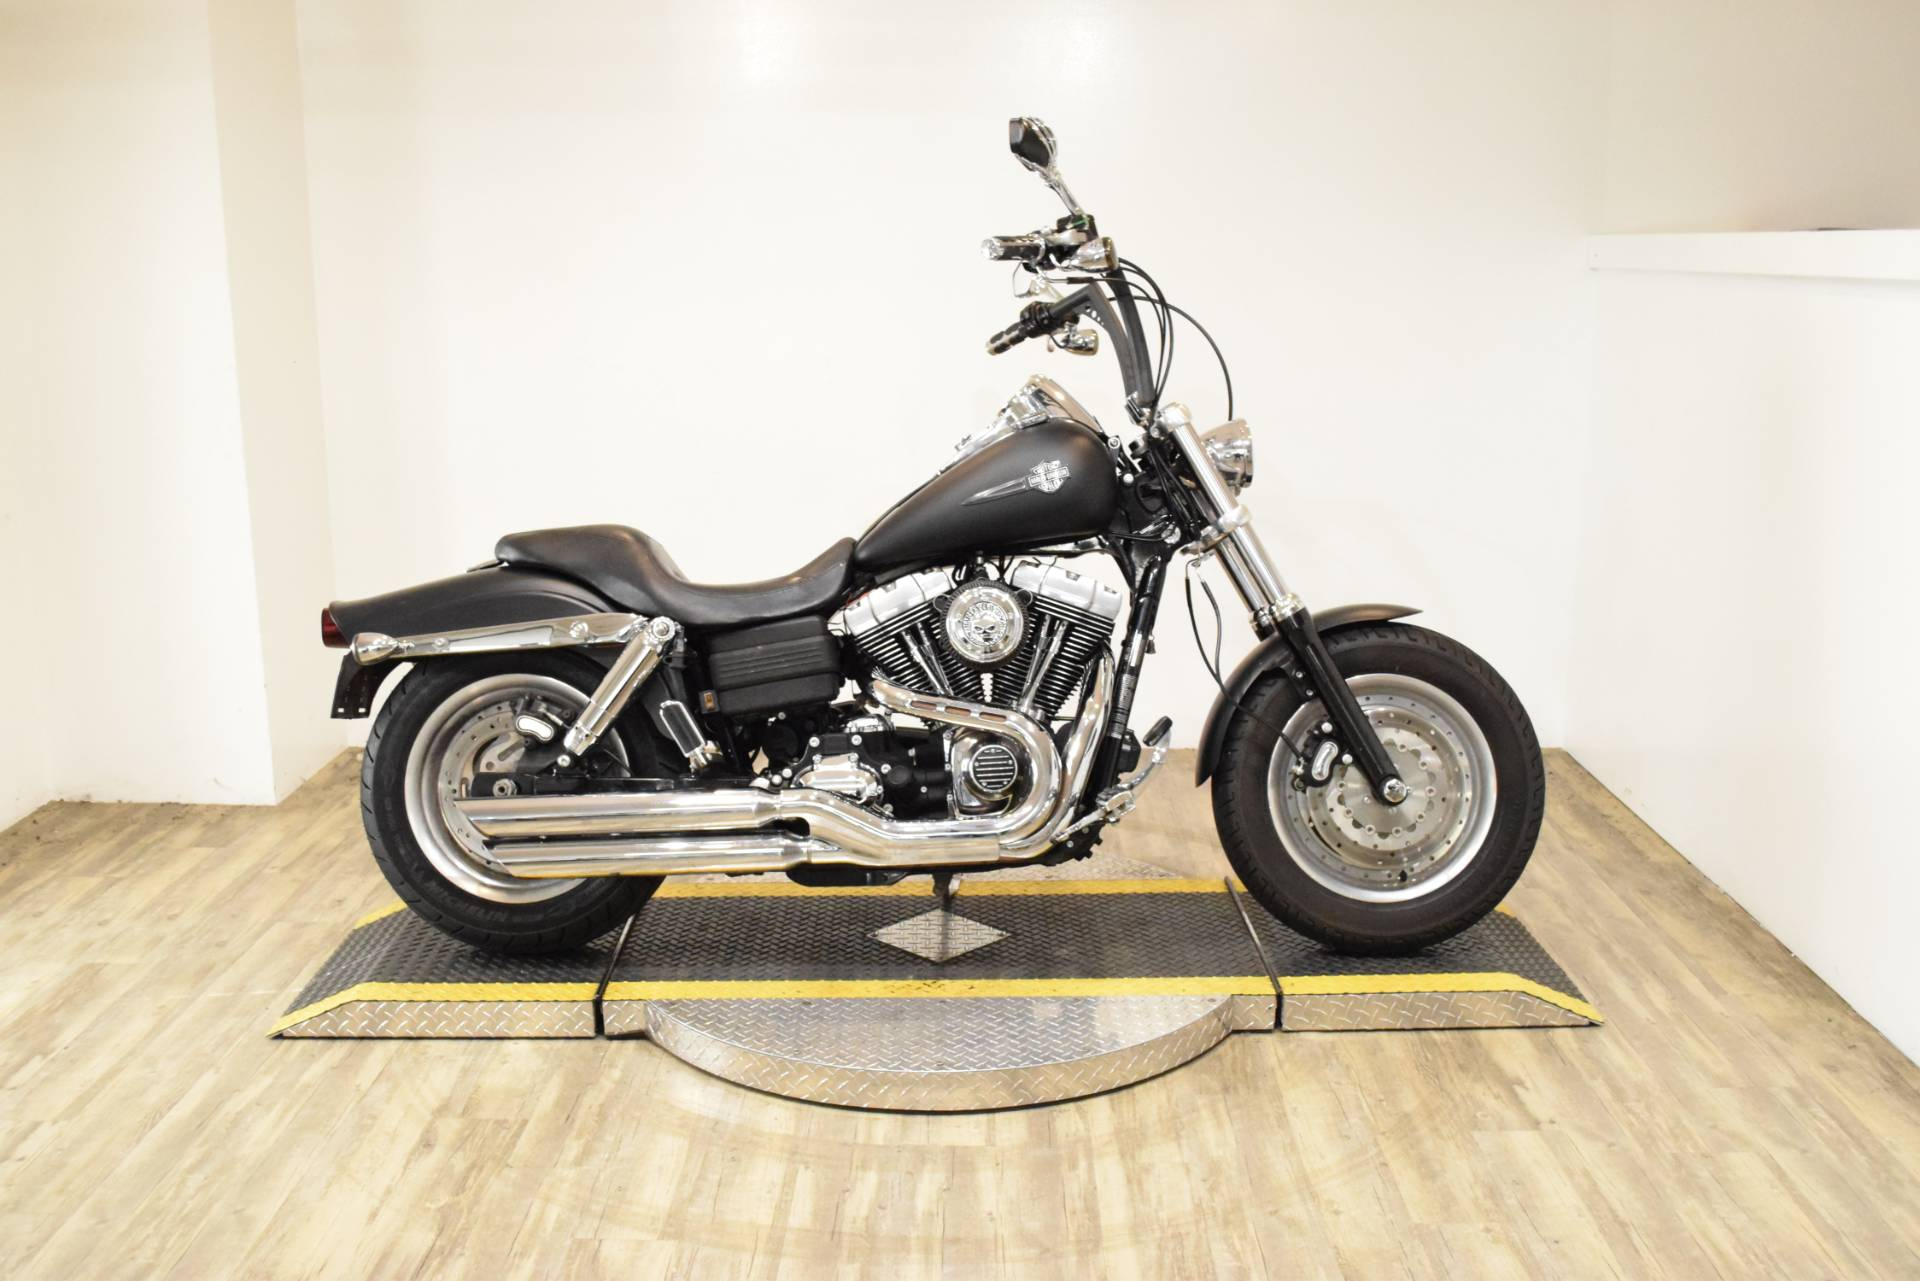 2009 Harley-Davidson Dyna® Fat Bob® Used Motorcycle for Sale ...